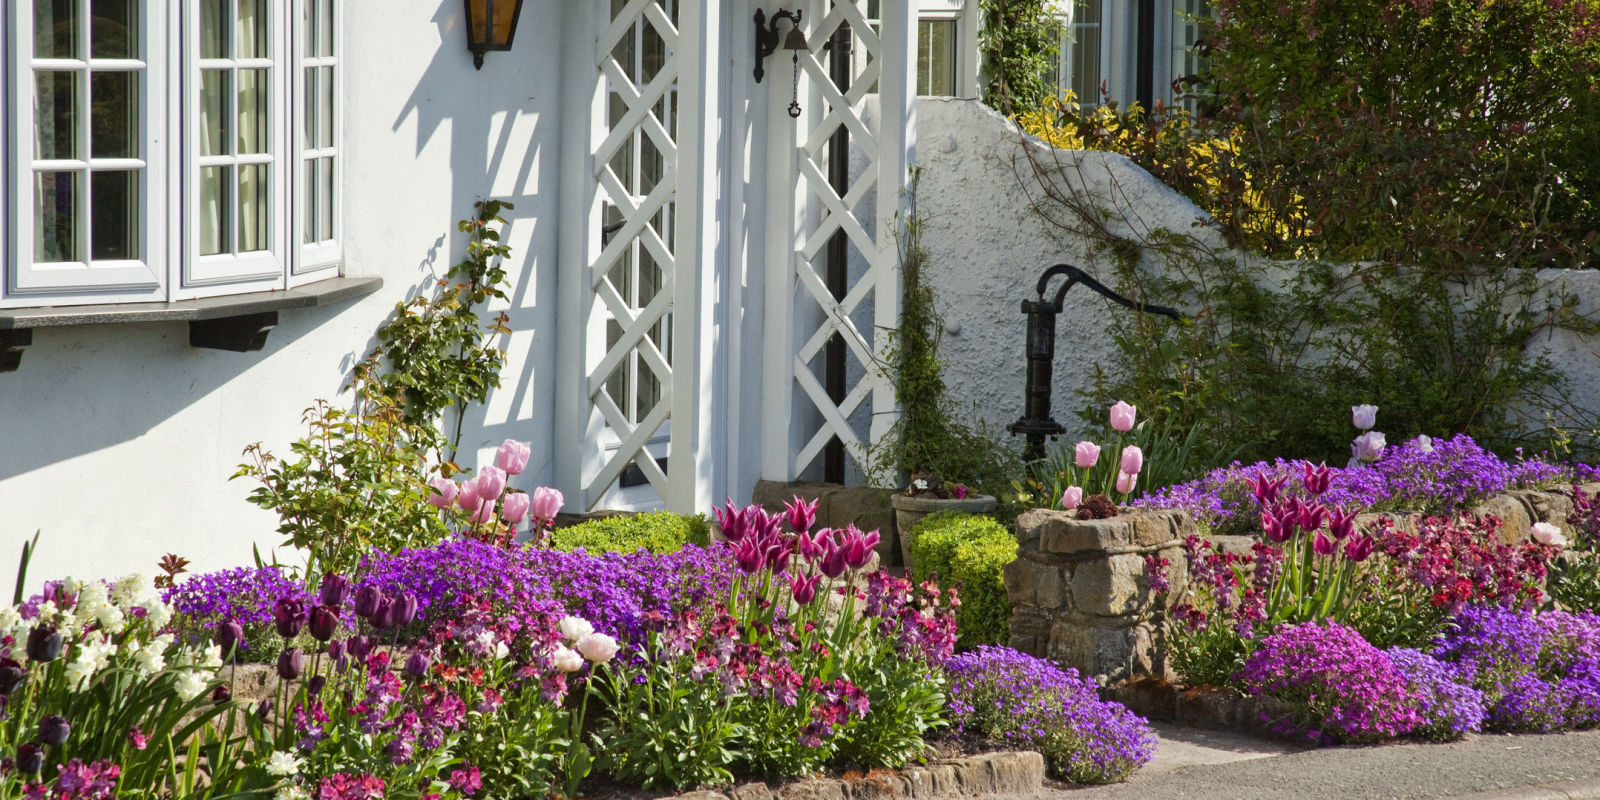 7 golden rules to give your front garden the wow factor